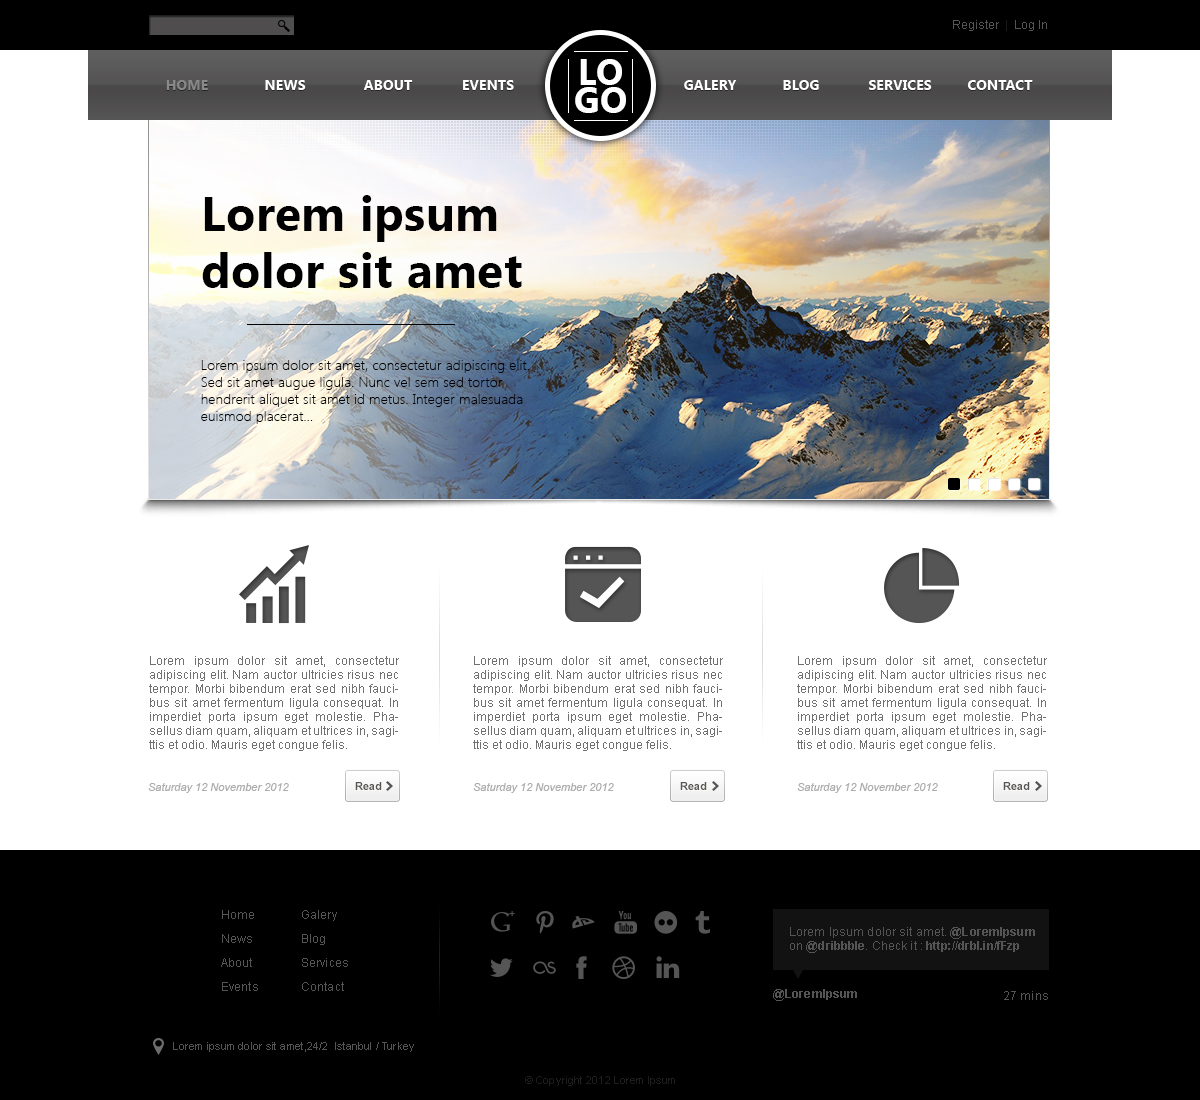 30 Free PSD Web Design Templates Inspirationfeed h4HkEv7X